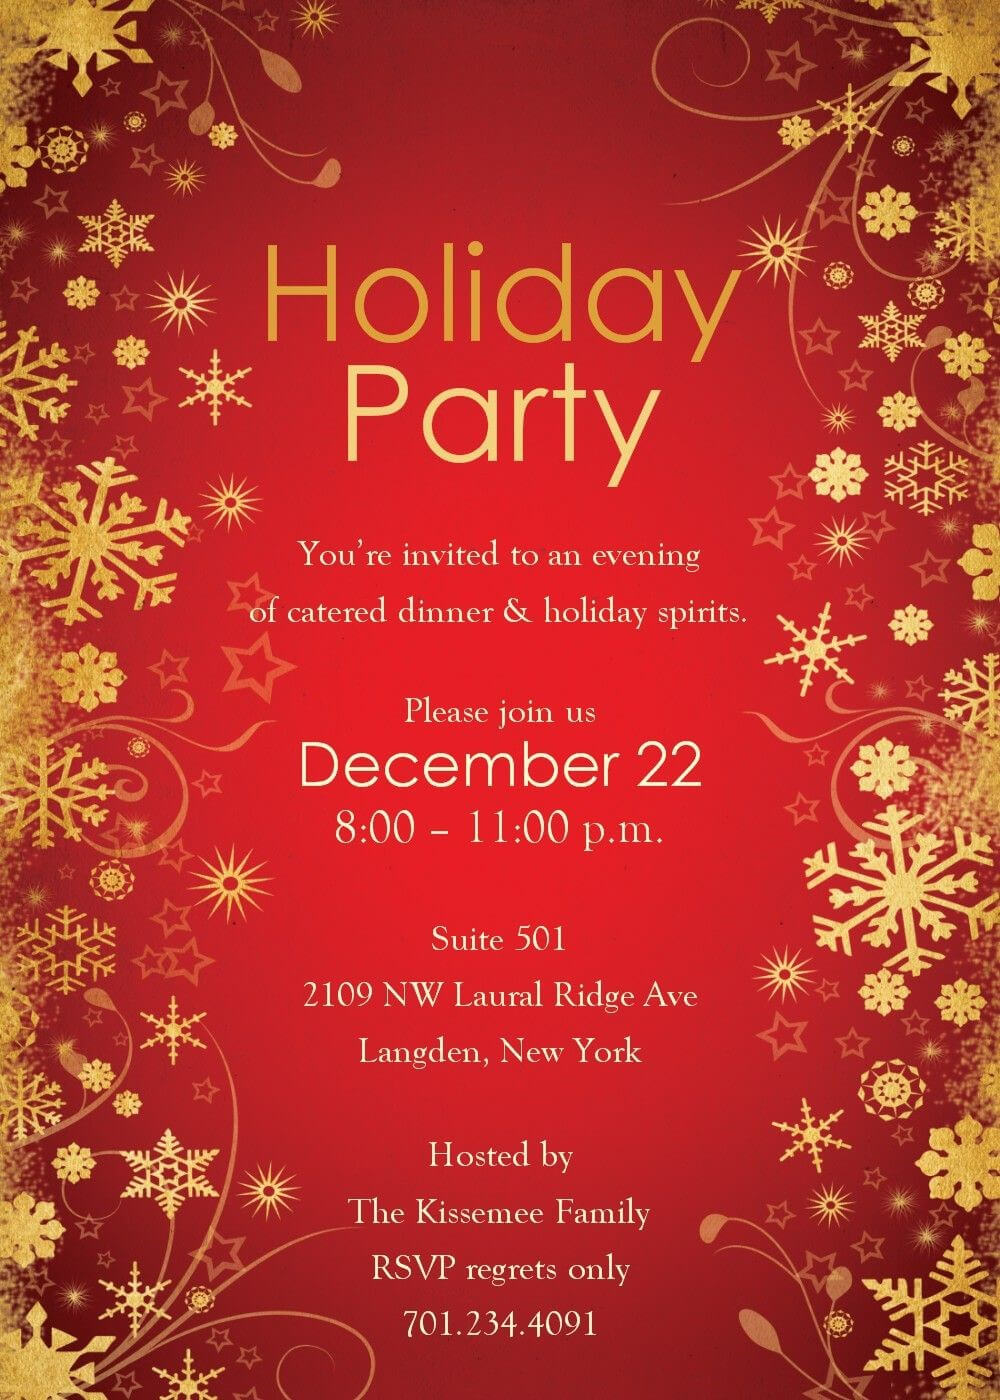 Party Invitations: Christmas Party Invitation Template Inside Free Christmas Invitation Templates For Word